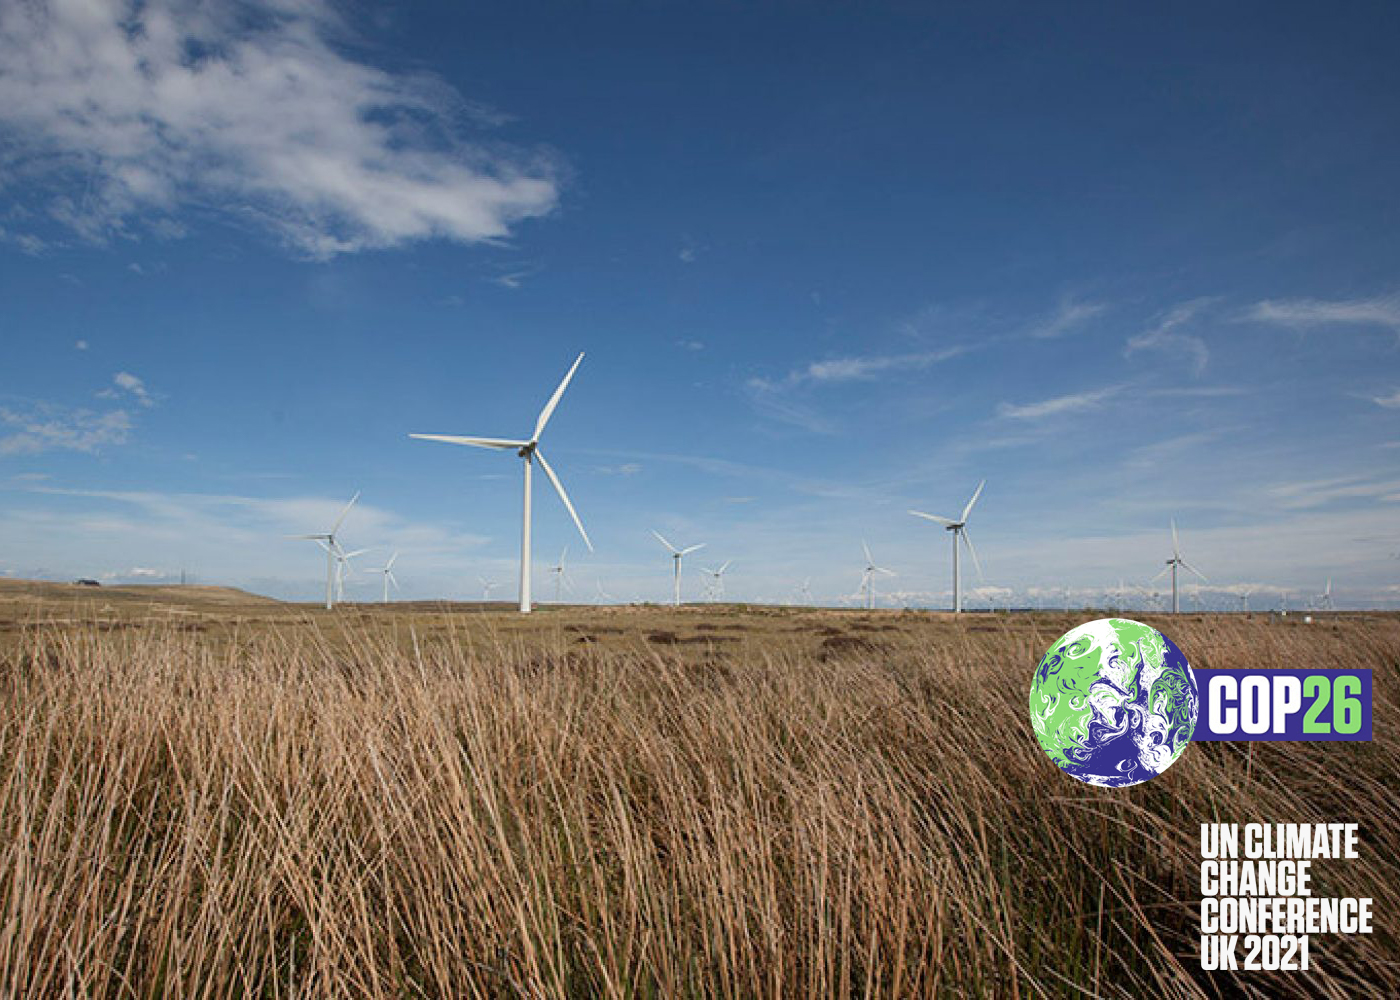 COP26 President visits Whitelee Windfarm near Glasgow to urge action on climate change